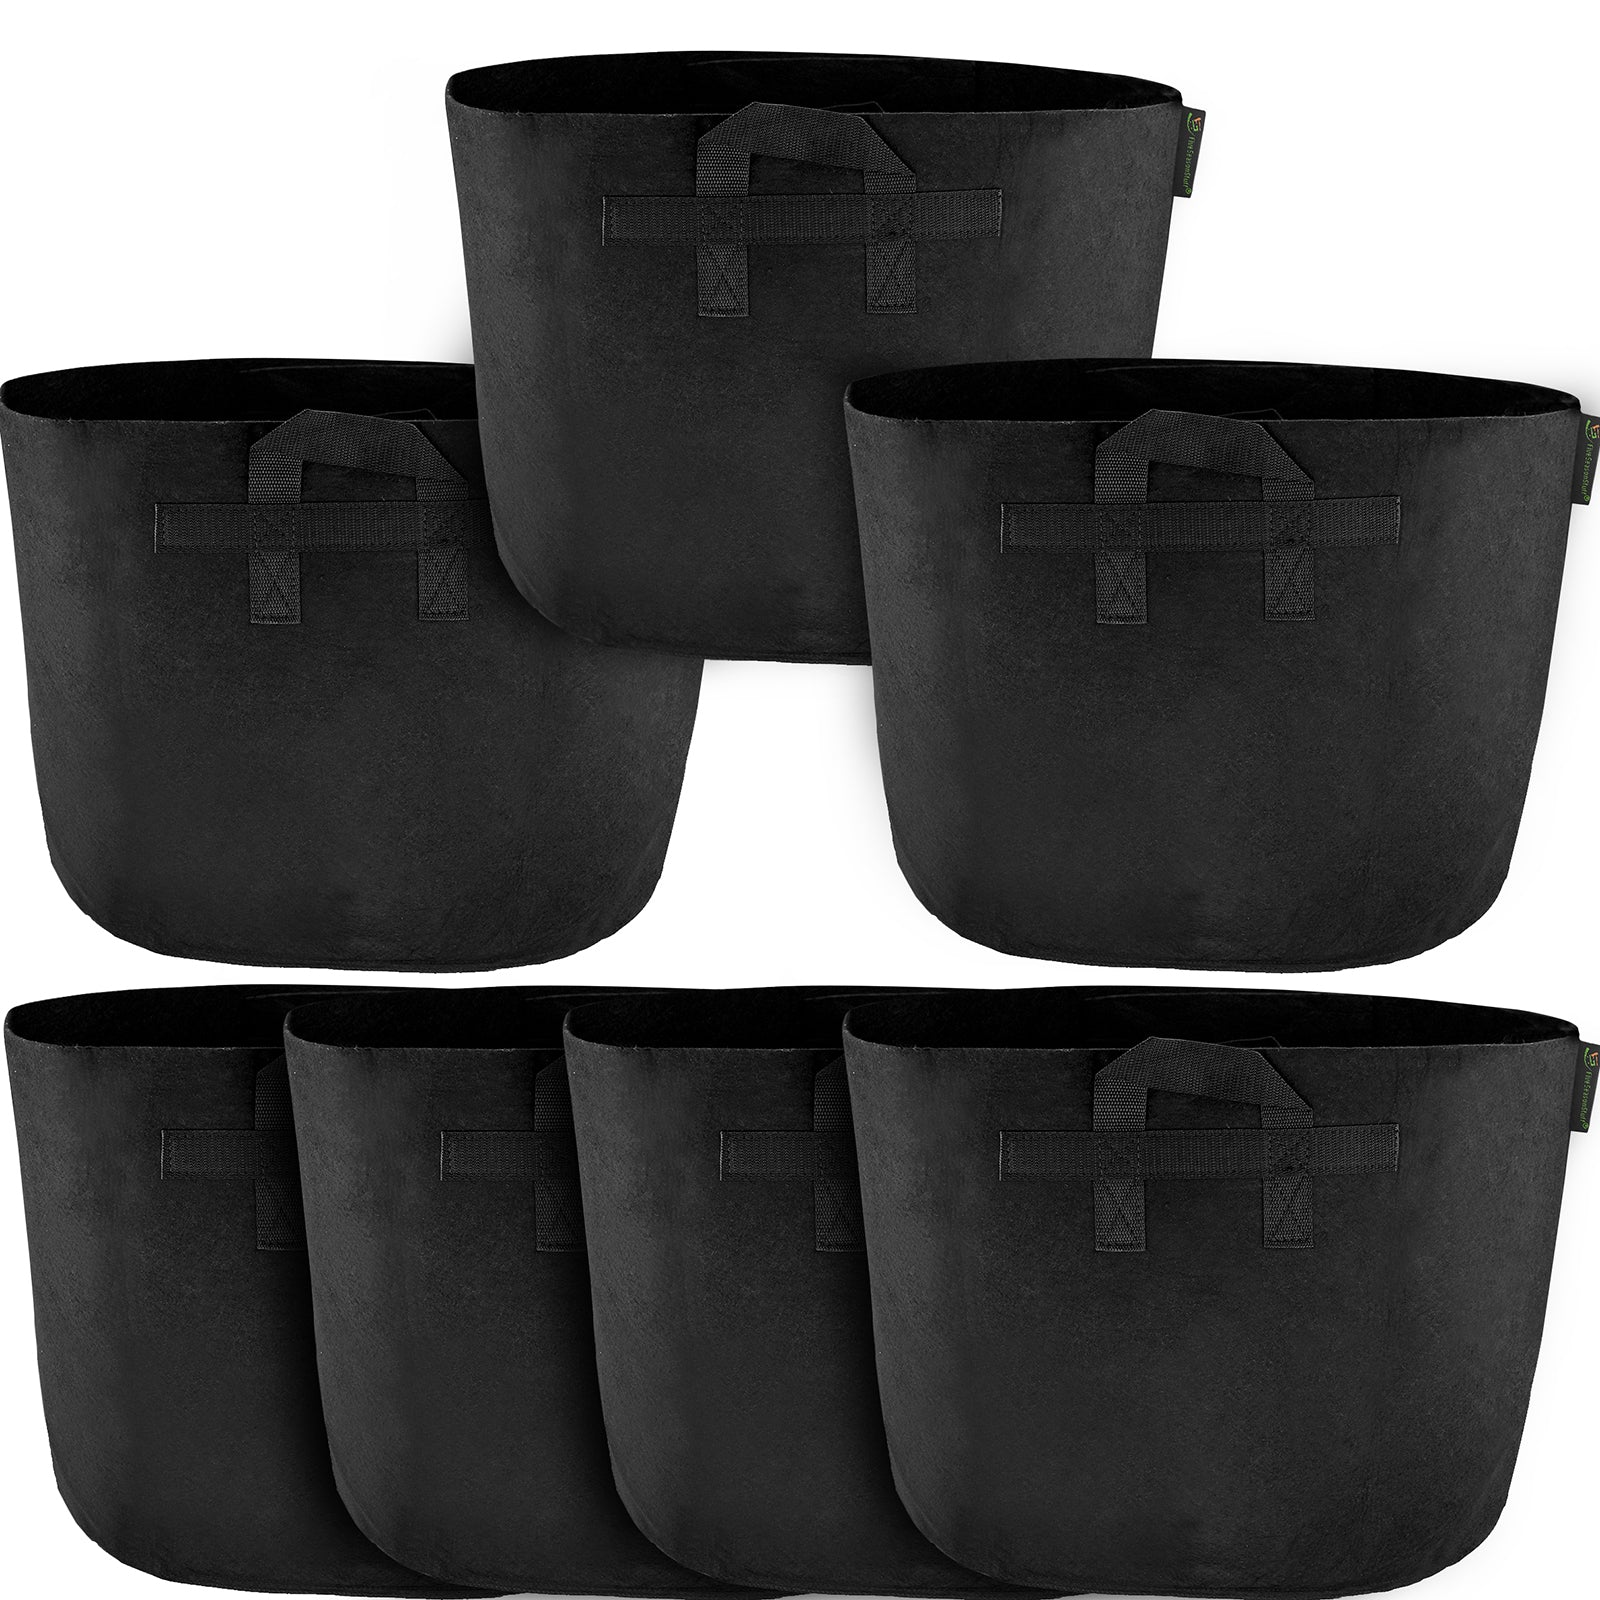 FiveSeasonStuff 8 Pack 10 Gallons Grow Bags Aeration Smart Gardening